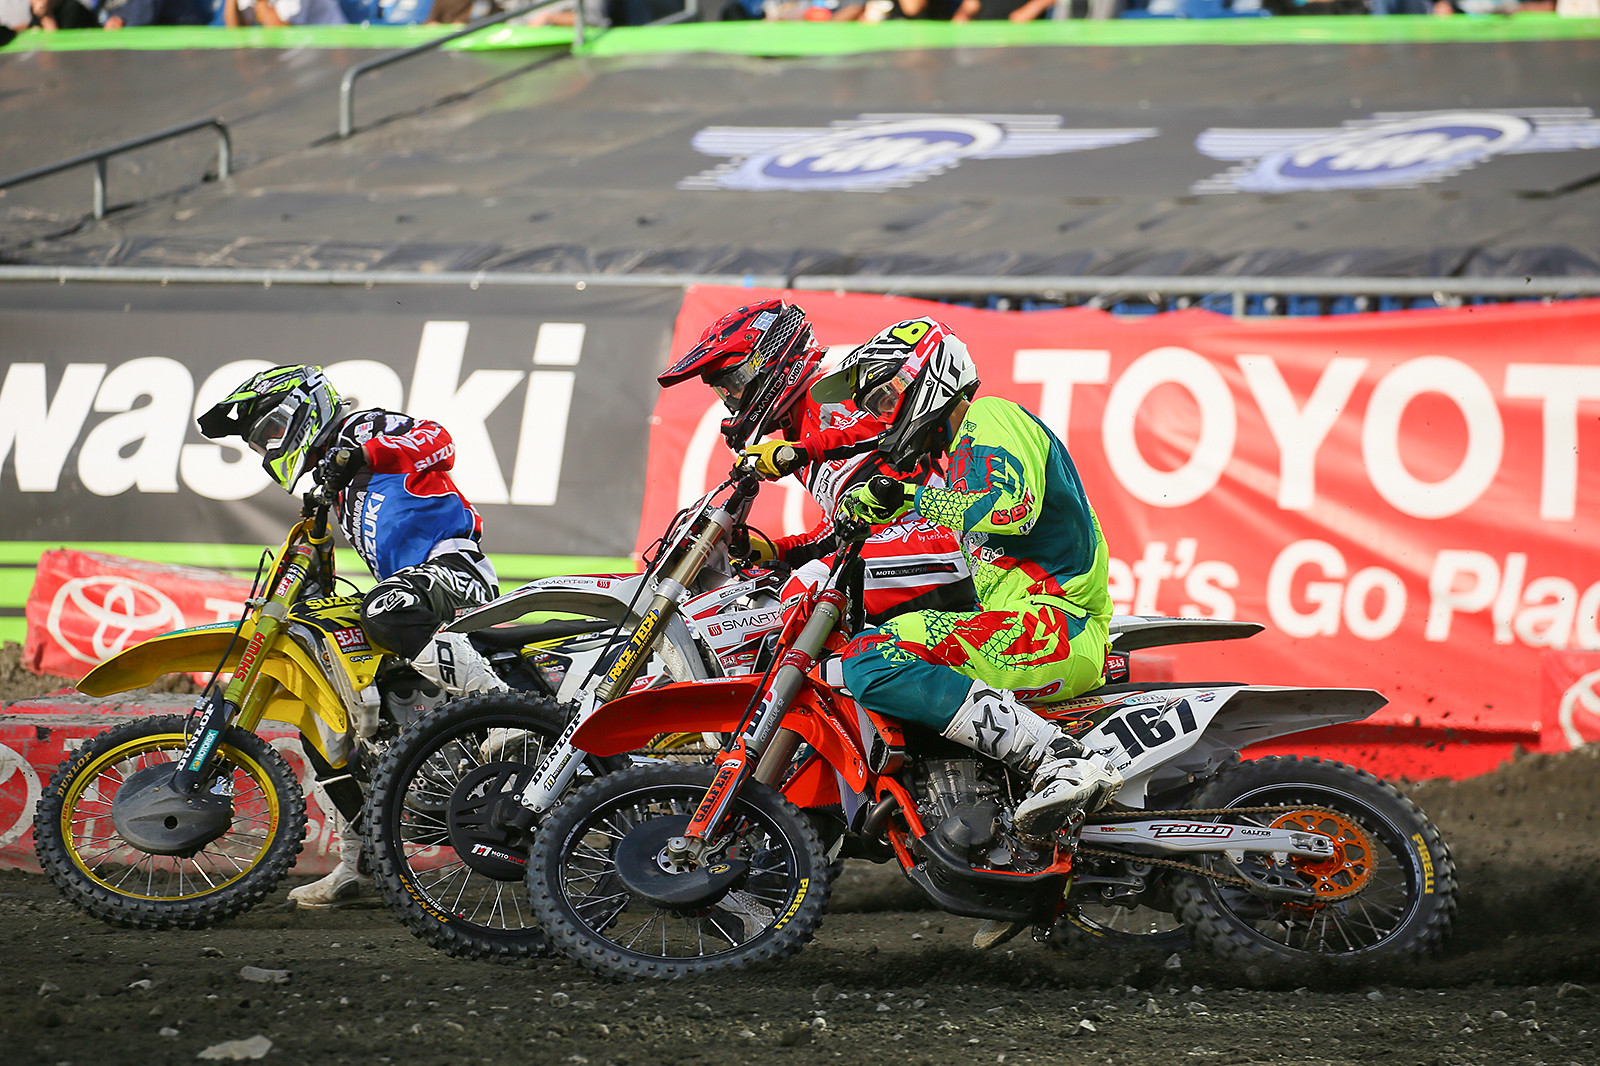 Blake Baggett, Vince Friese, and Benny Bloss - Pit Bits: Foxborough - Motocross Pictures - Vital MX